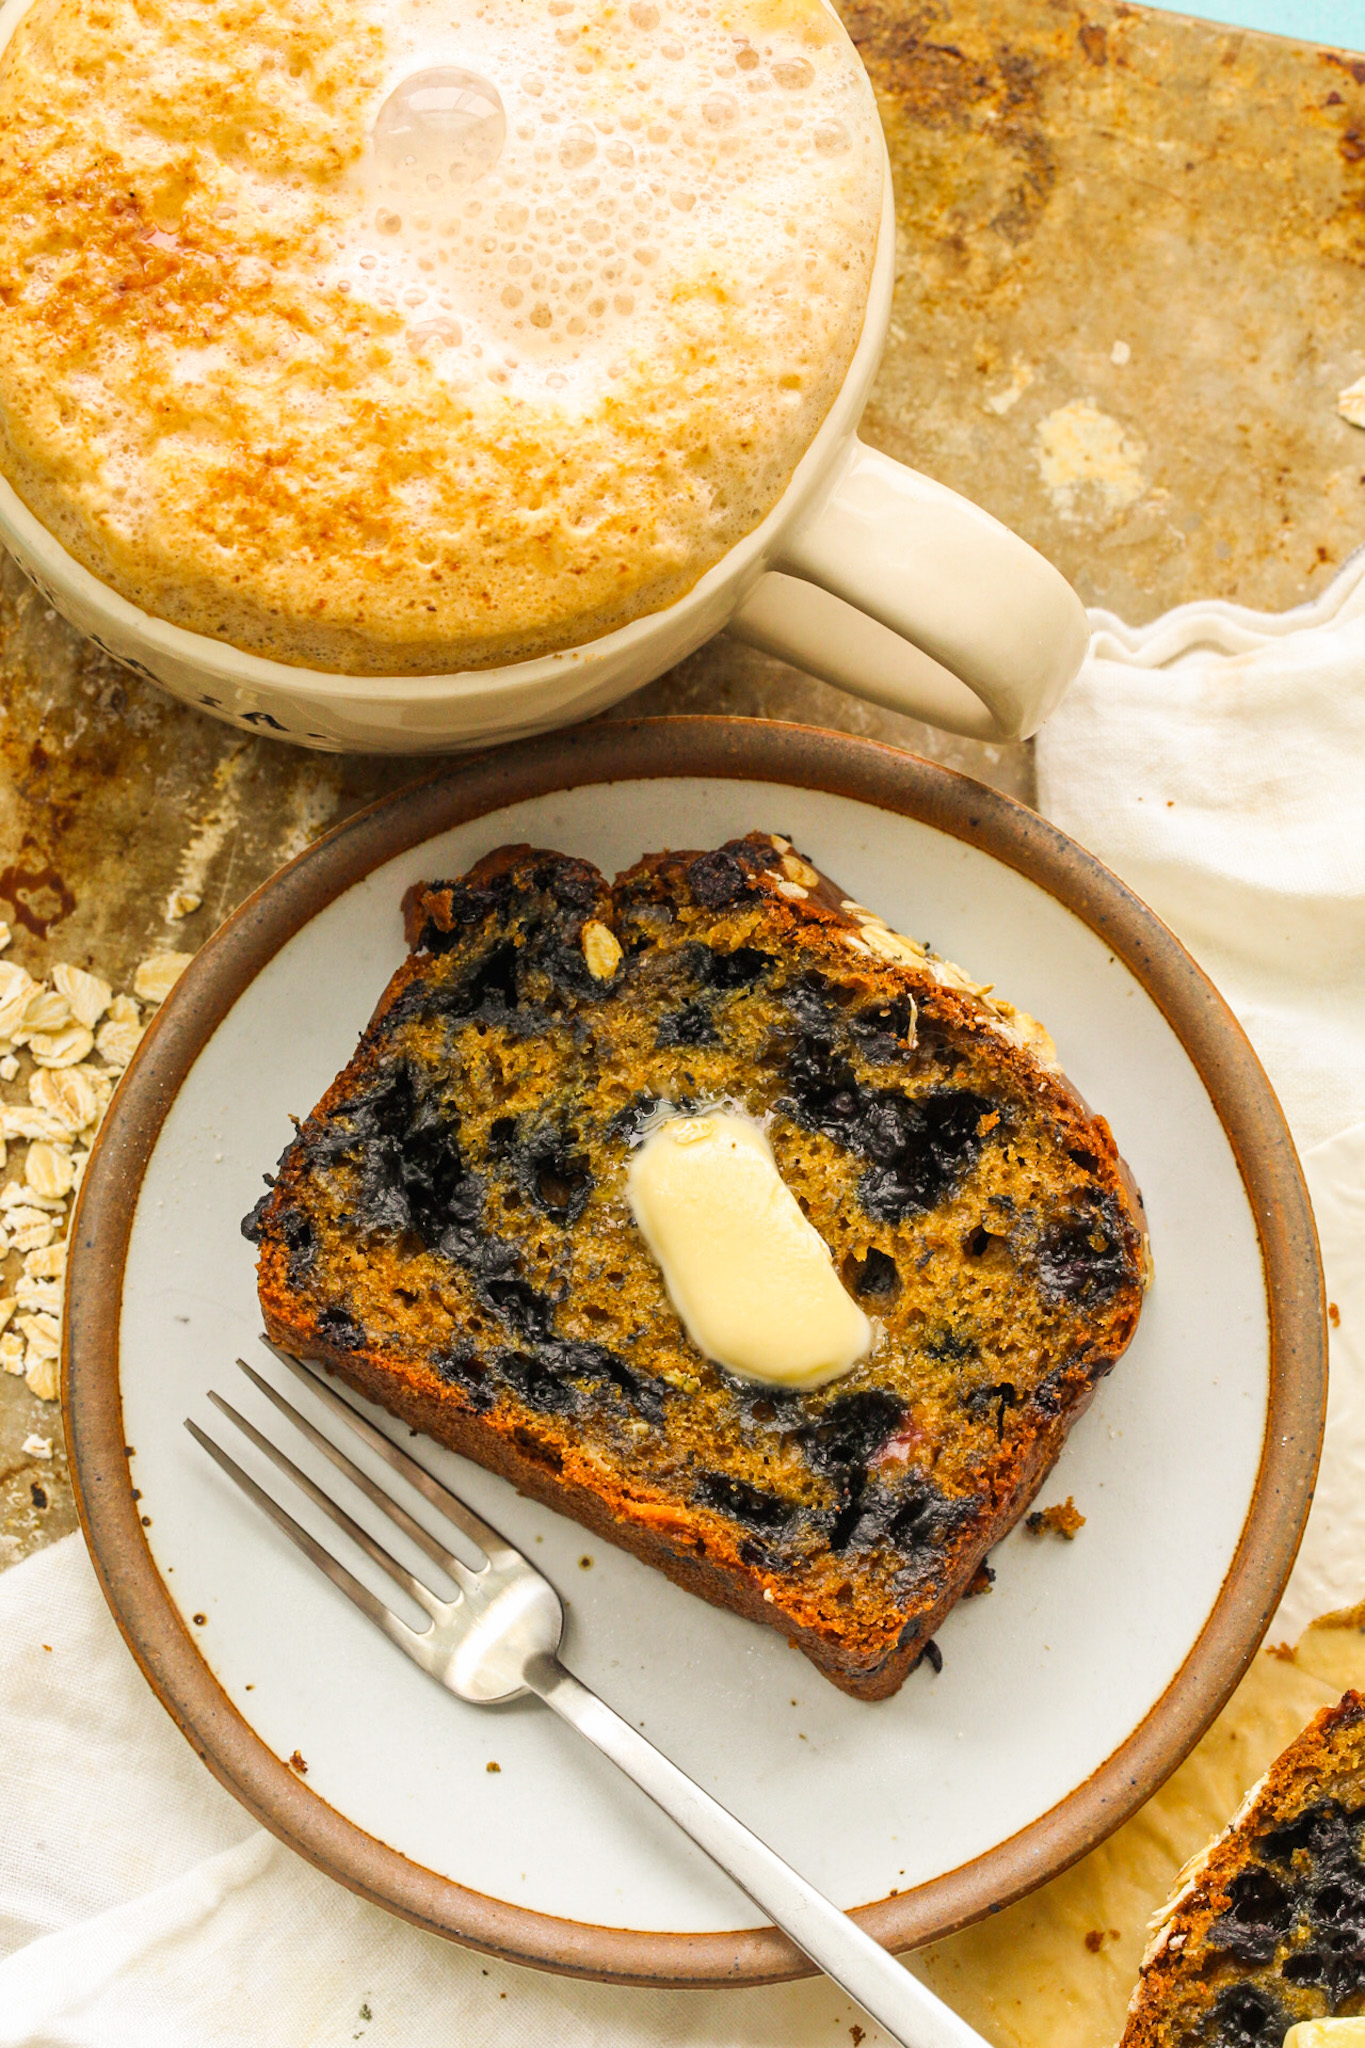 Blueberry Lemon Loaf with latte